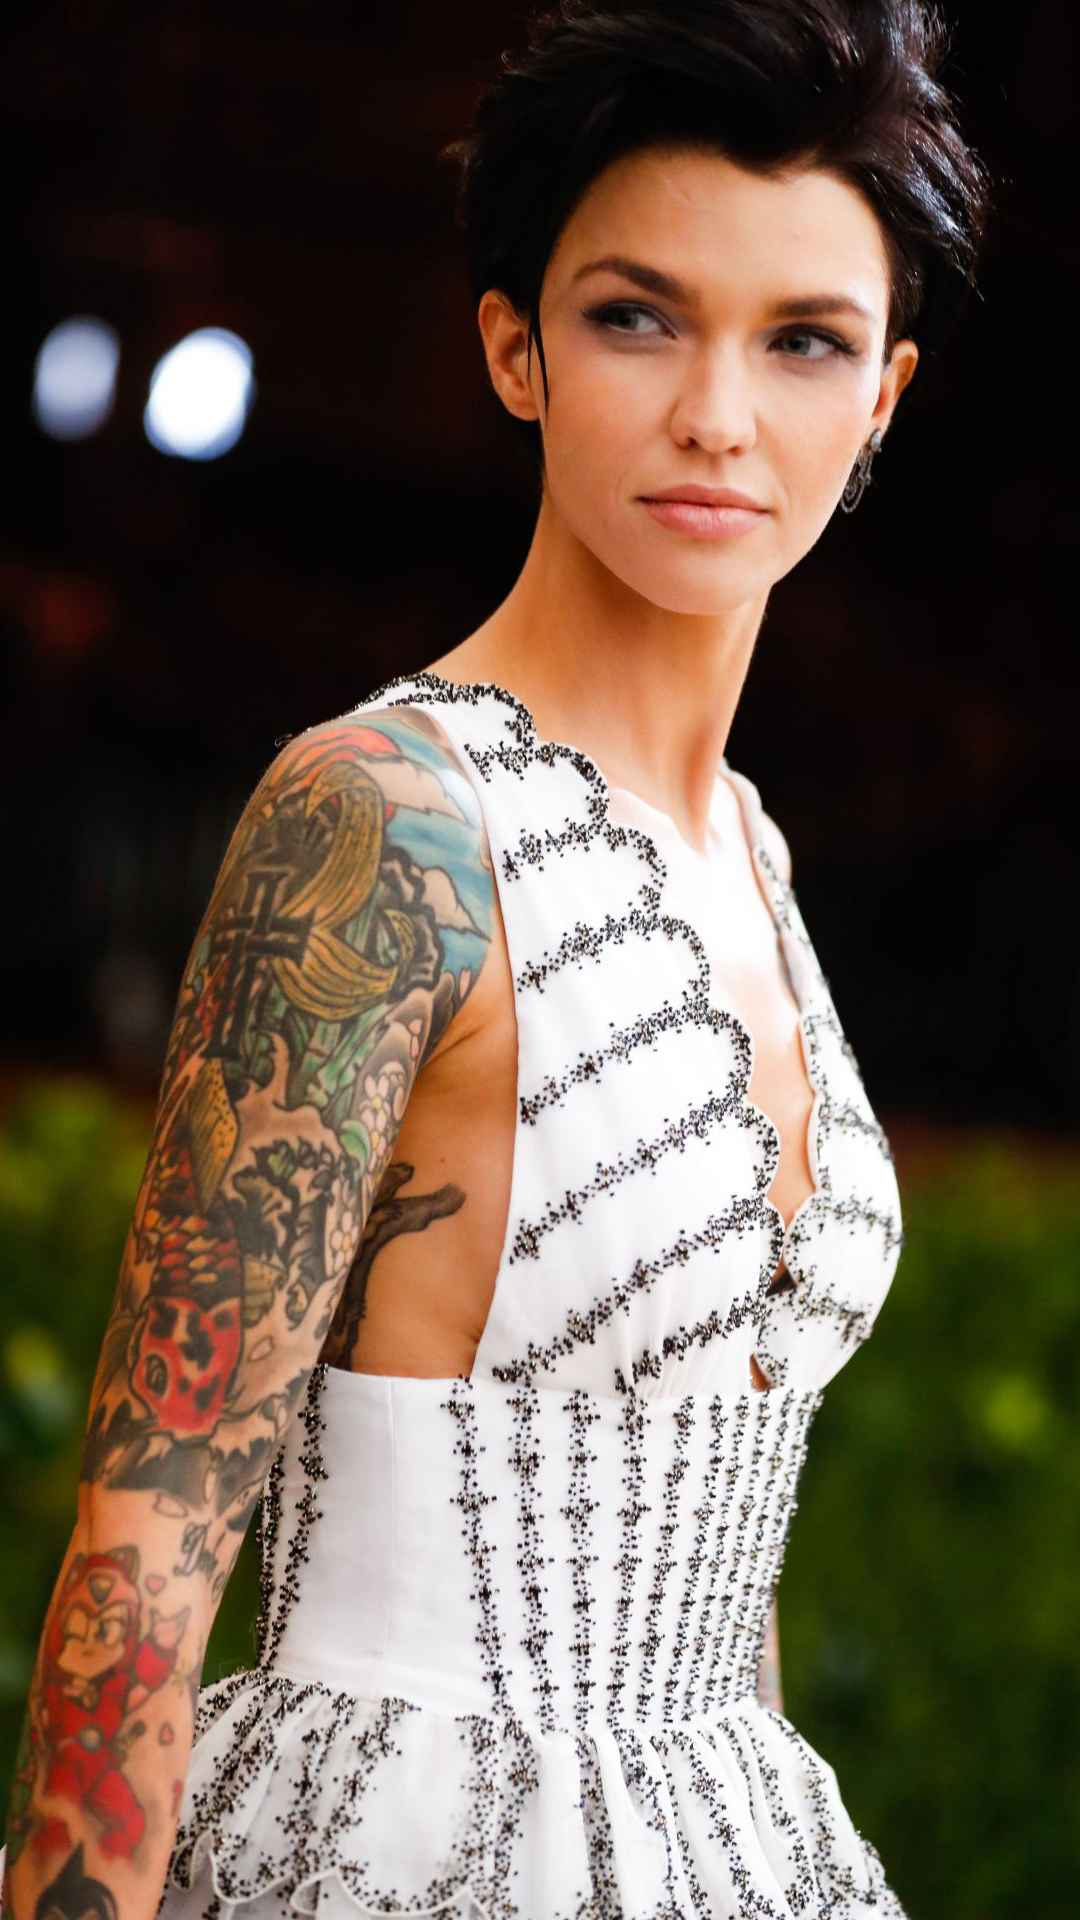 Ruby Rose Mobile Wallpaper Picture Image Background